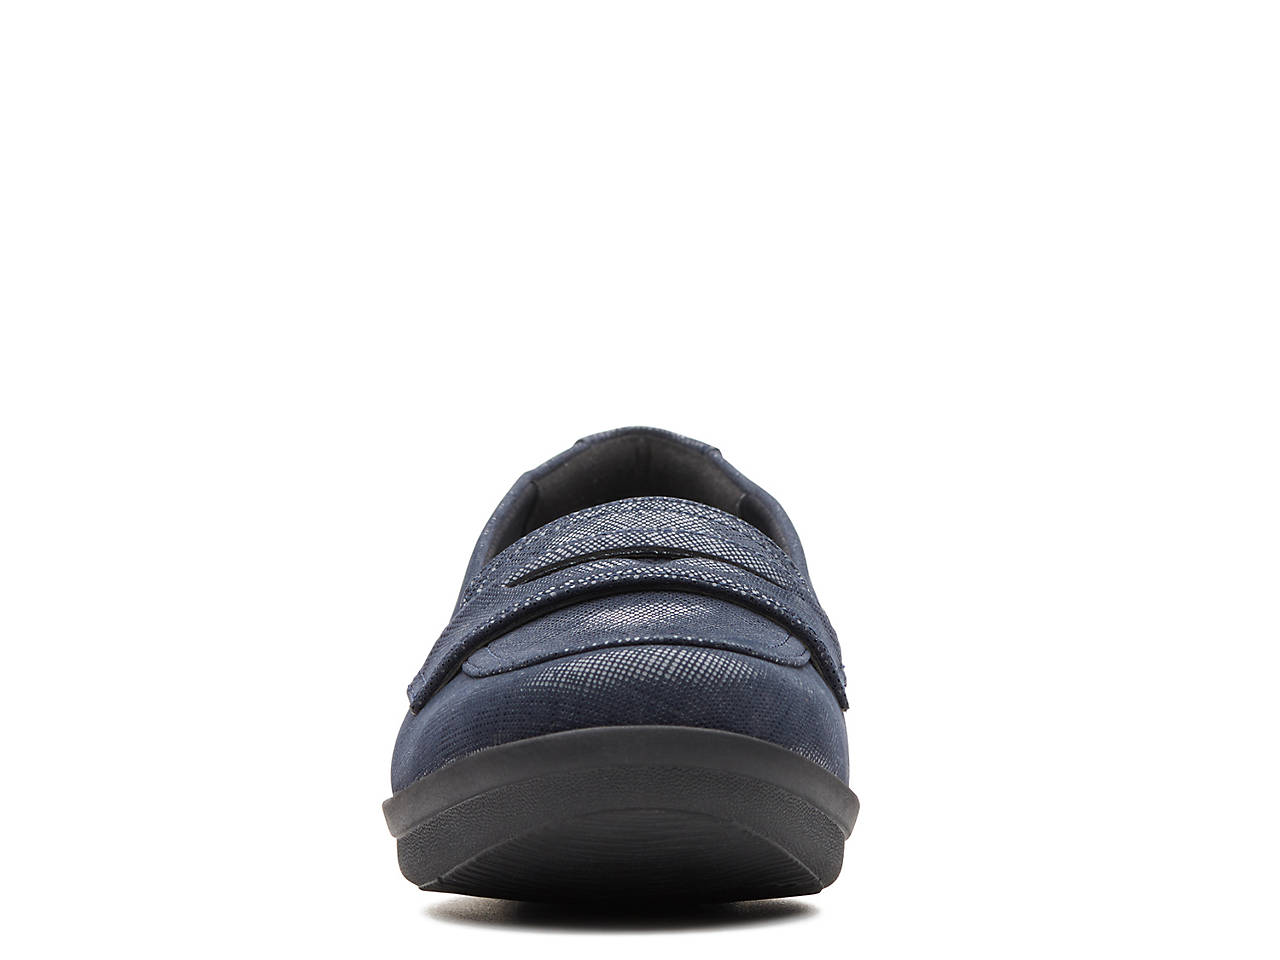 854677d7765aa Ayla Form Penny Loafer